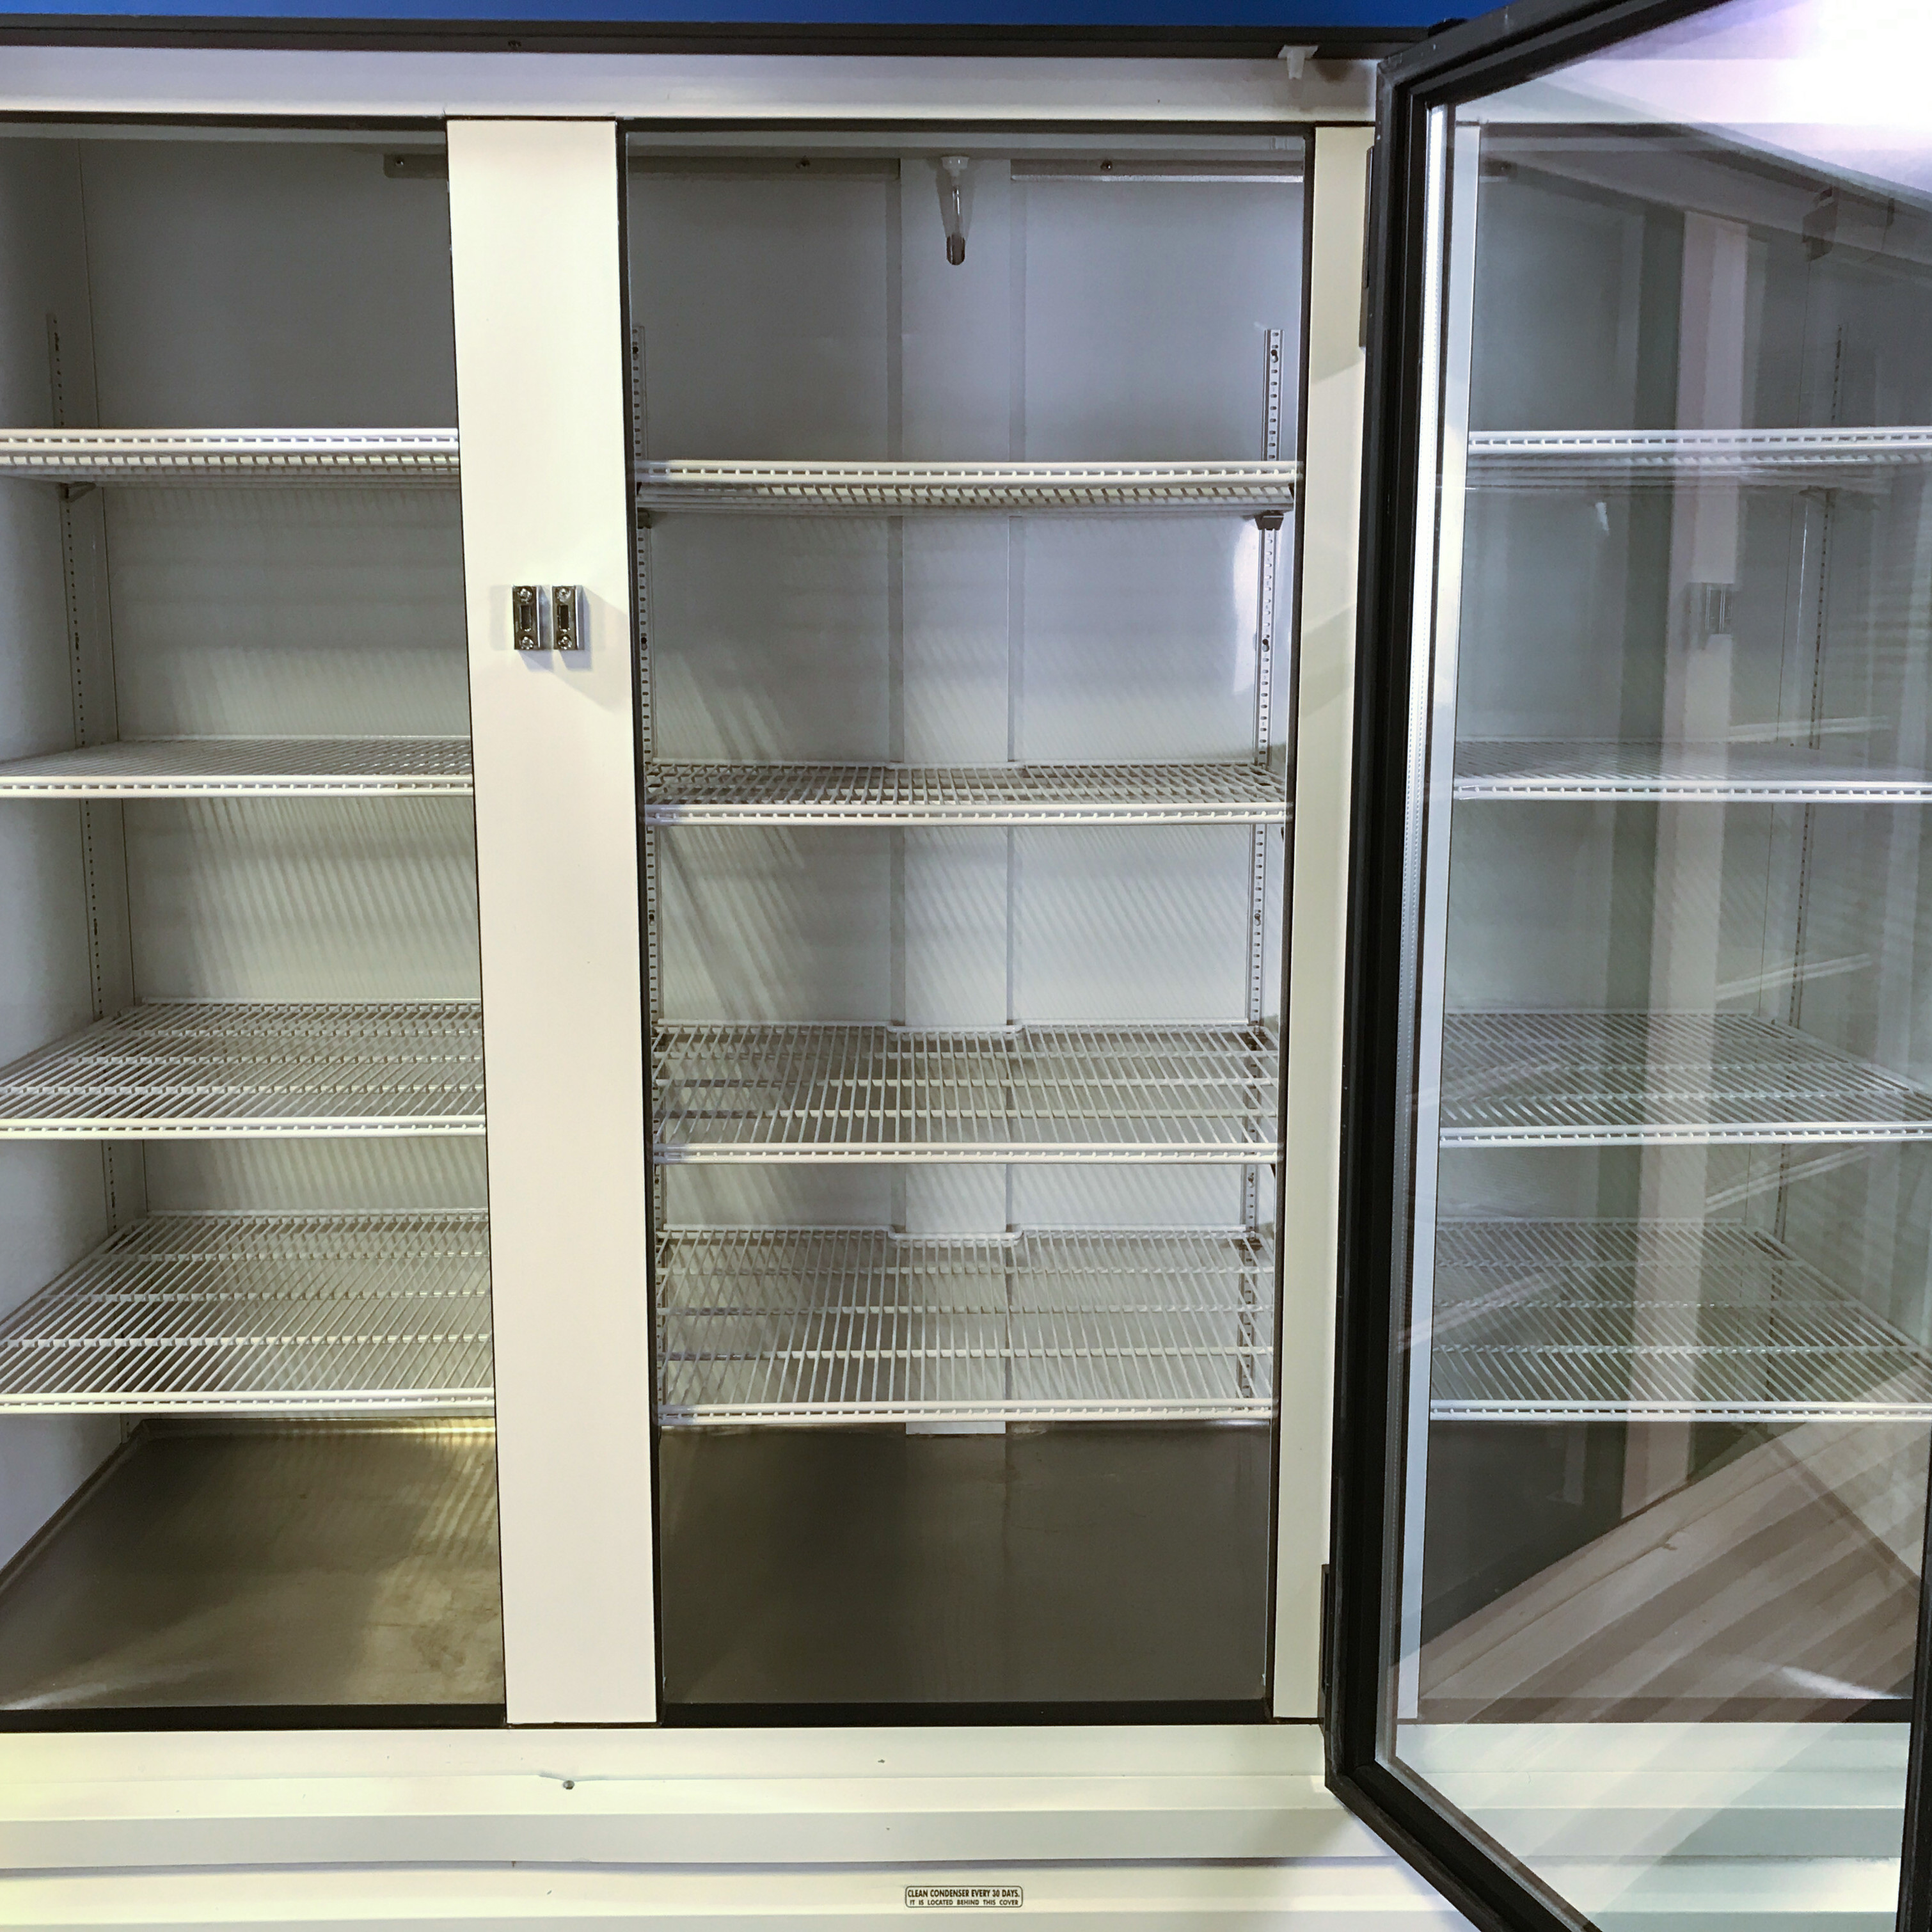 Aegis Model 3-CR-70-I2 Scientific Upright Refrigerator 70 CU. FT. Image